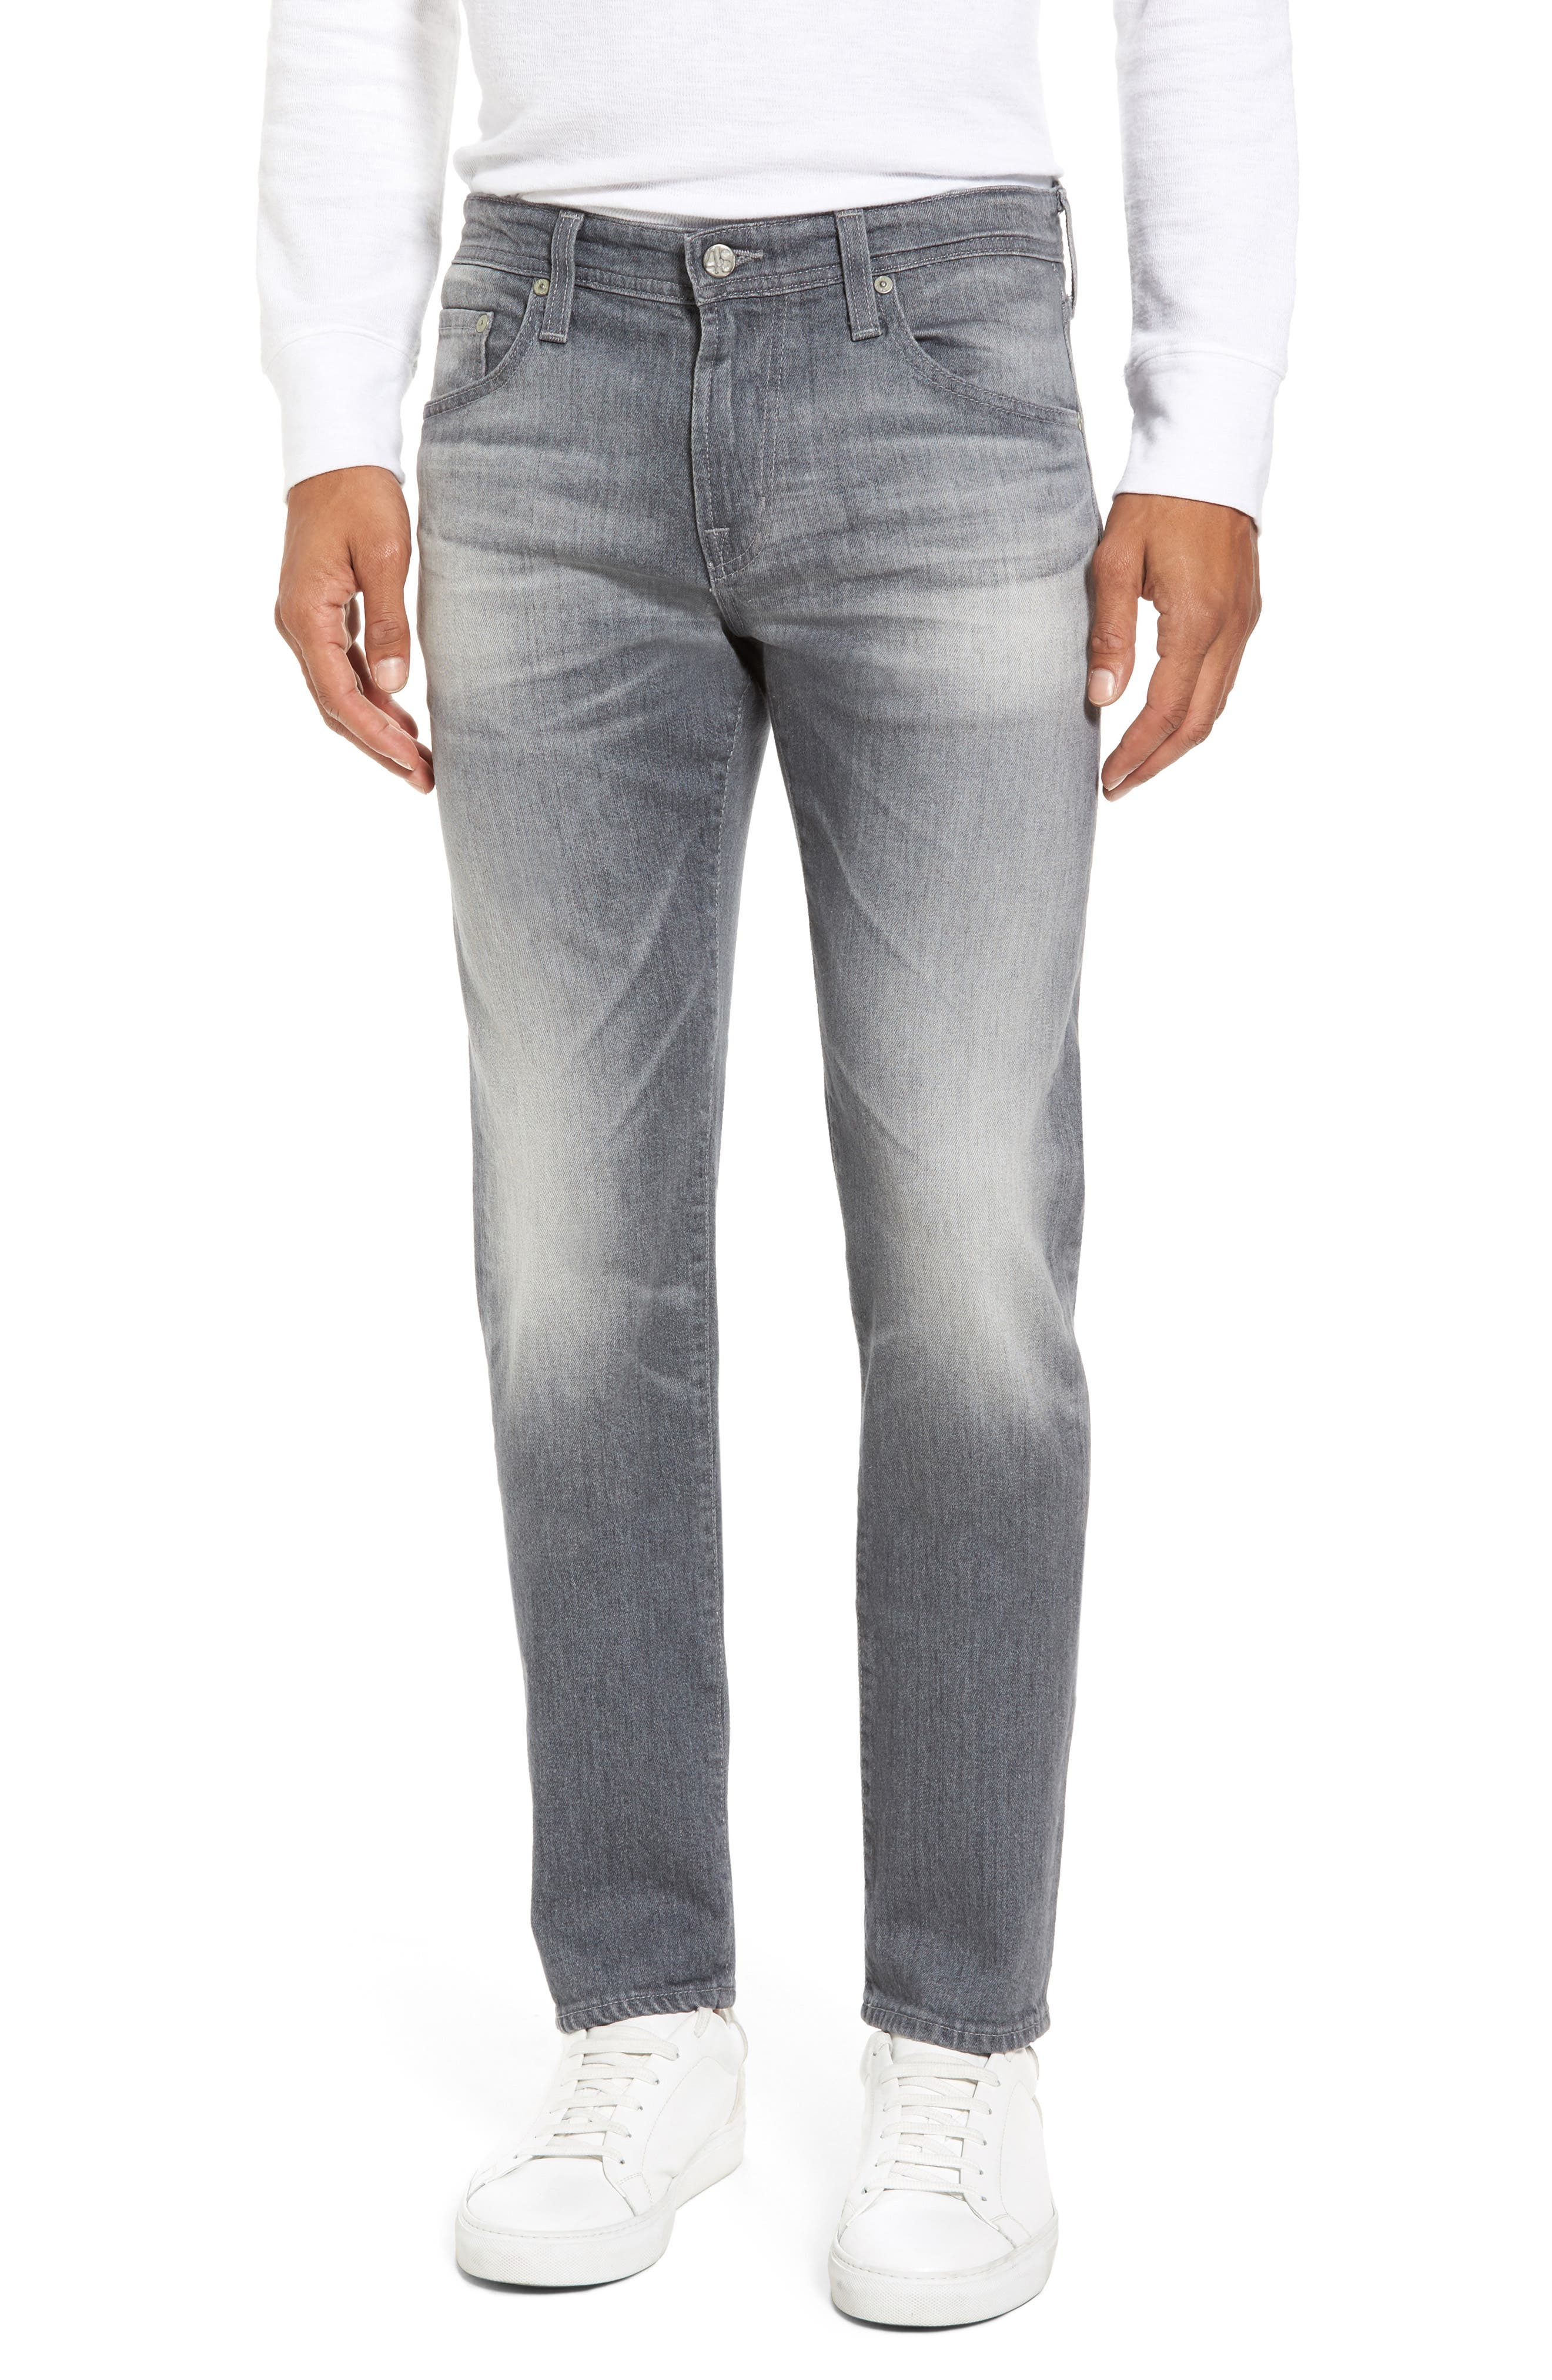 Tellis Modern Slim Fit Jeans,                             Main thumbnail 1, color,                             13 Years Fortress